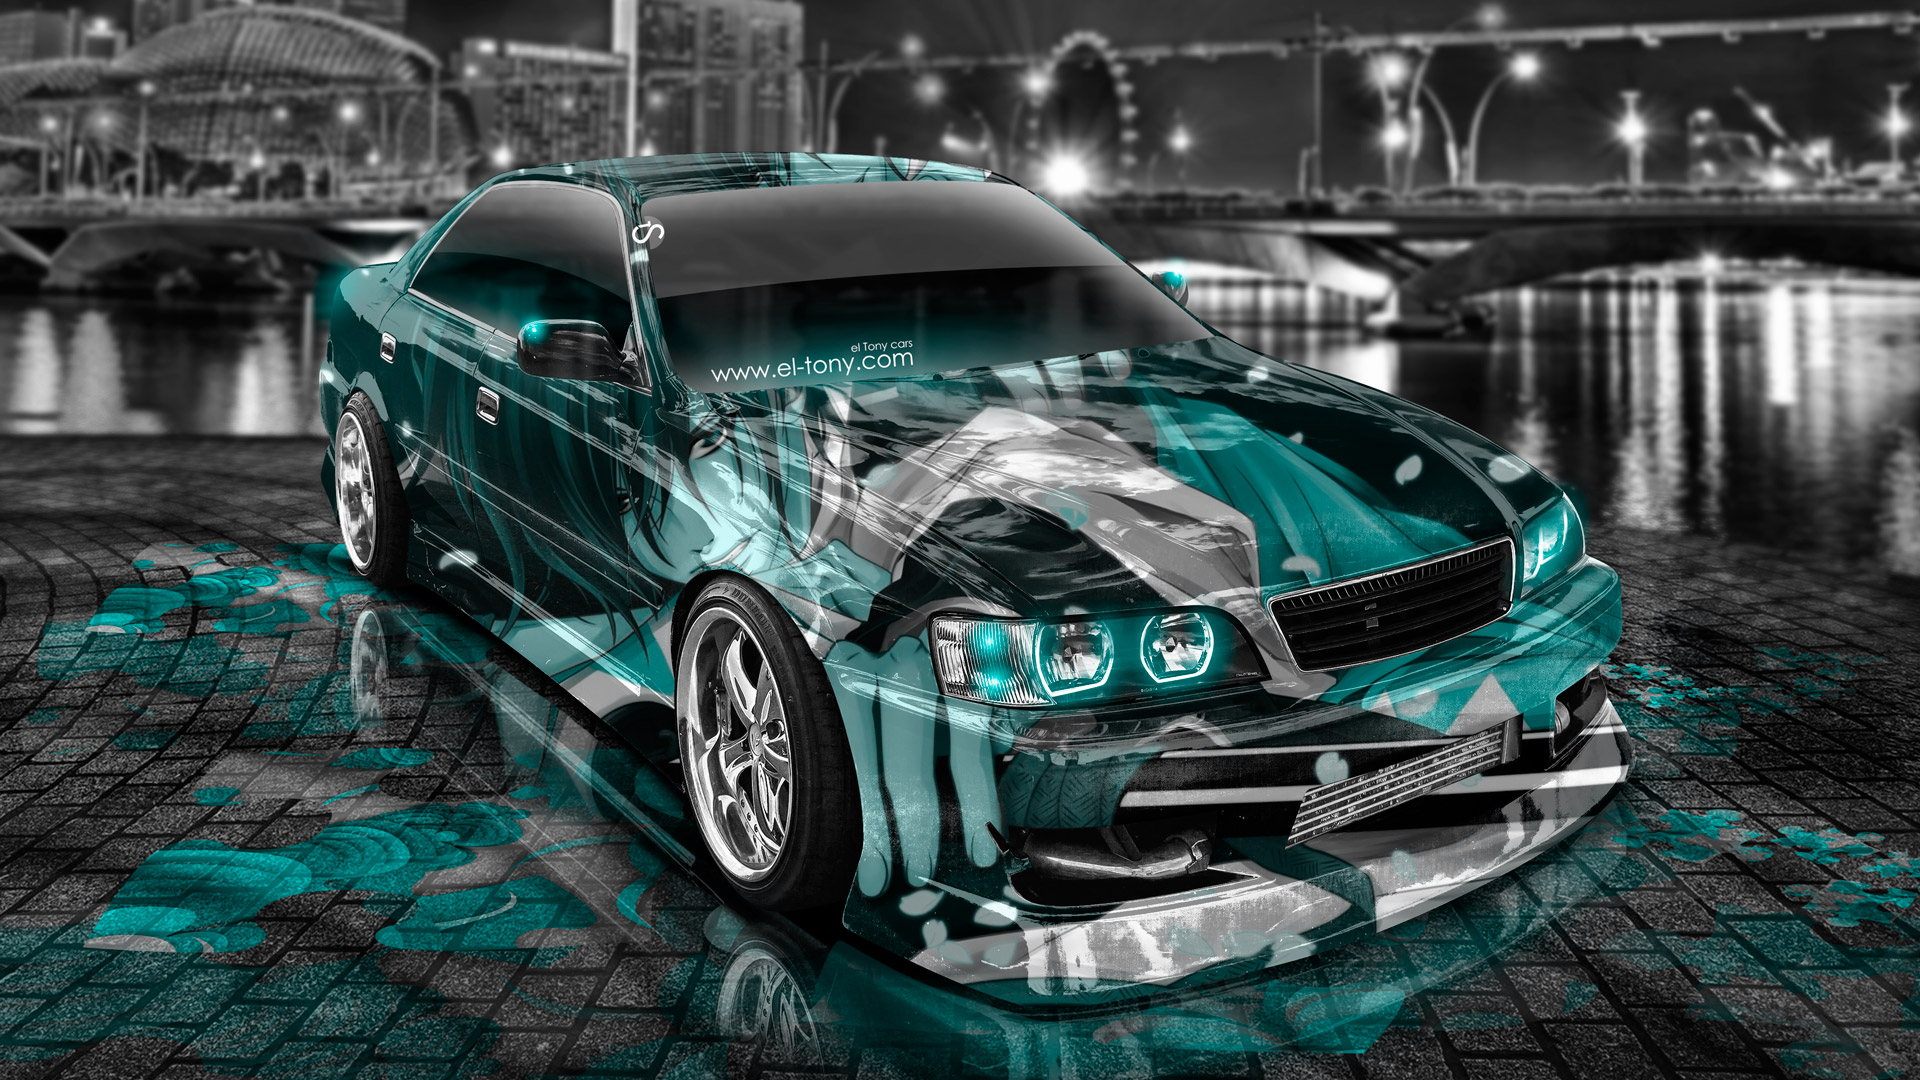 Perfect Toyota Chaser JZX100 JDM Tuning Anime Aerography City .